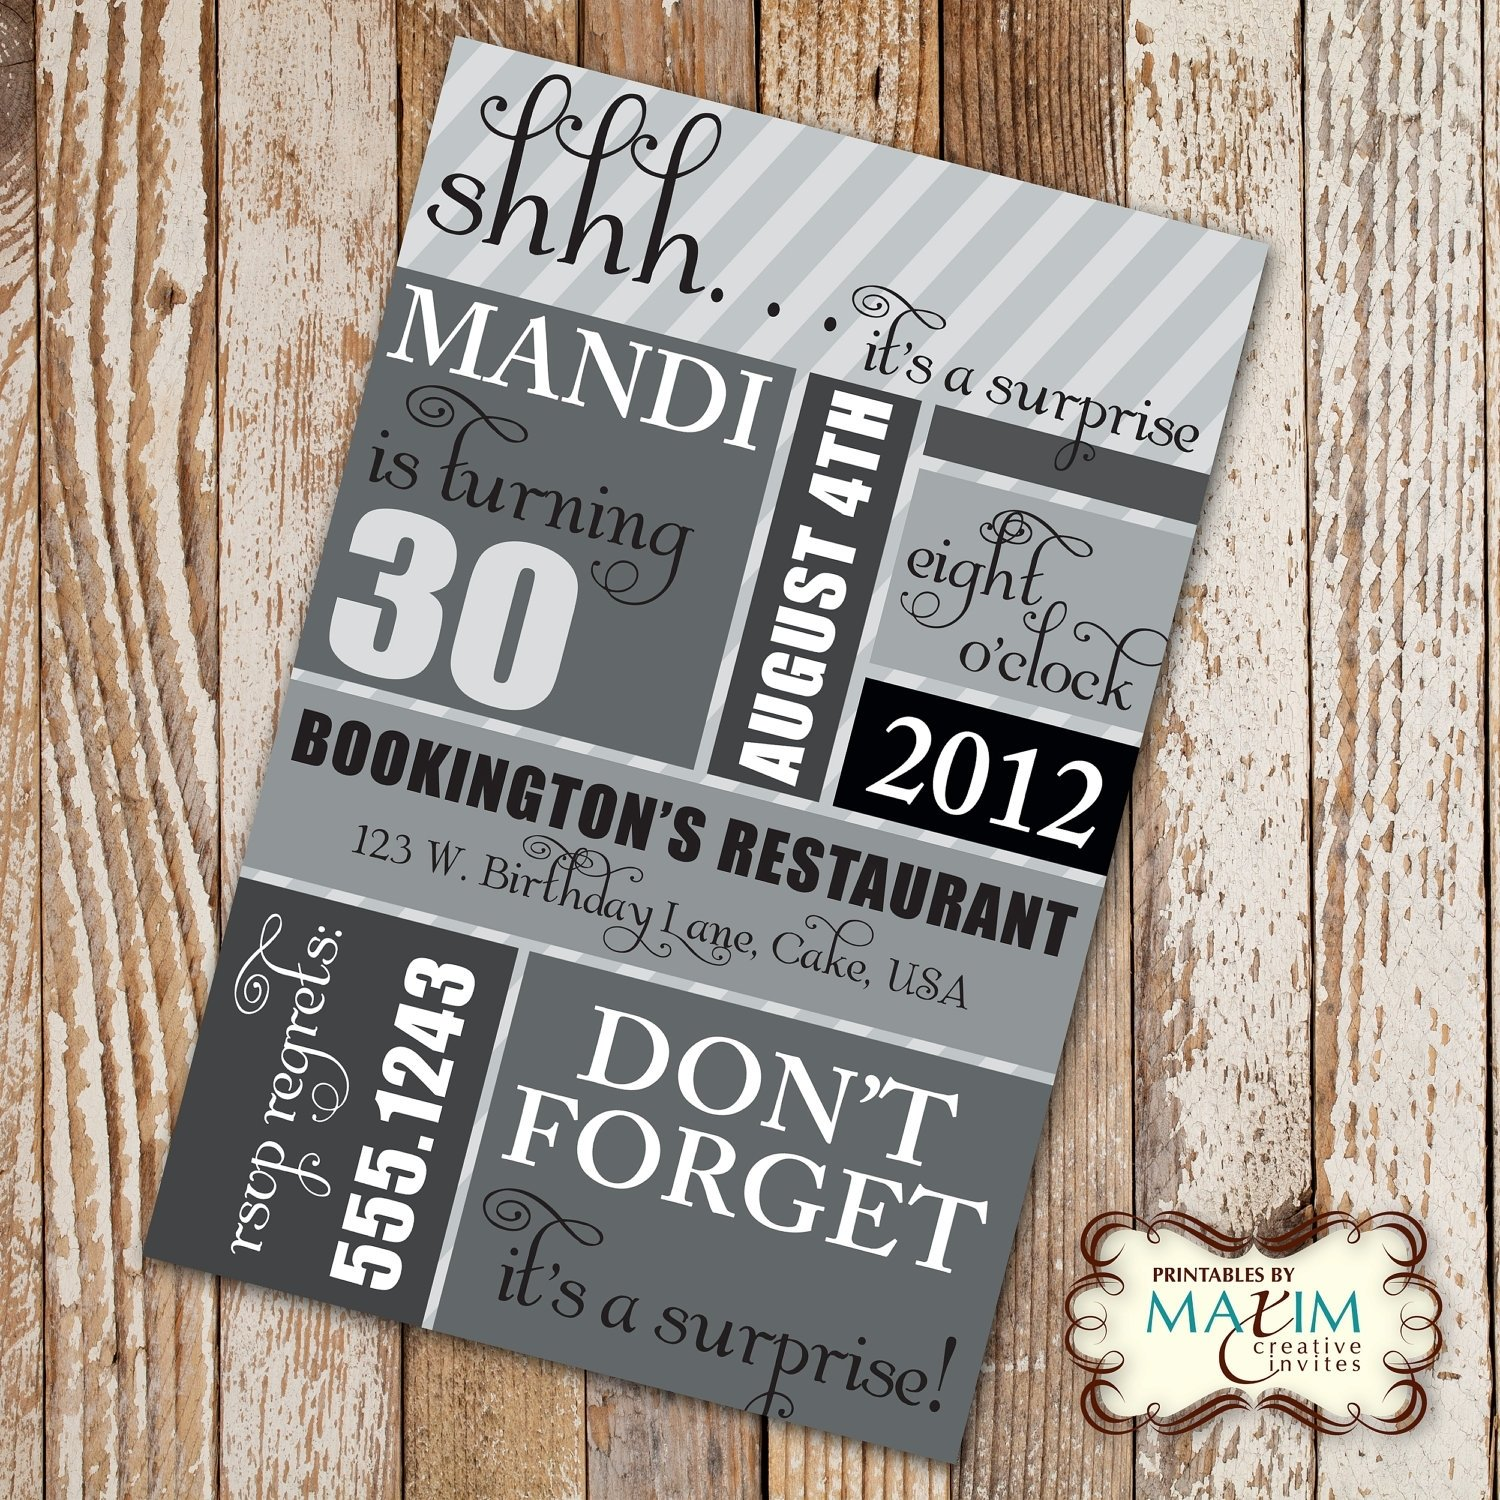 10 Most Recommended Surprise 30Th Birthday Party Ideas surprise 30th birthday party invitations dolanpedia invitations